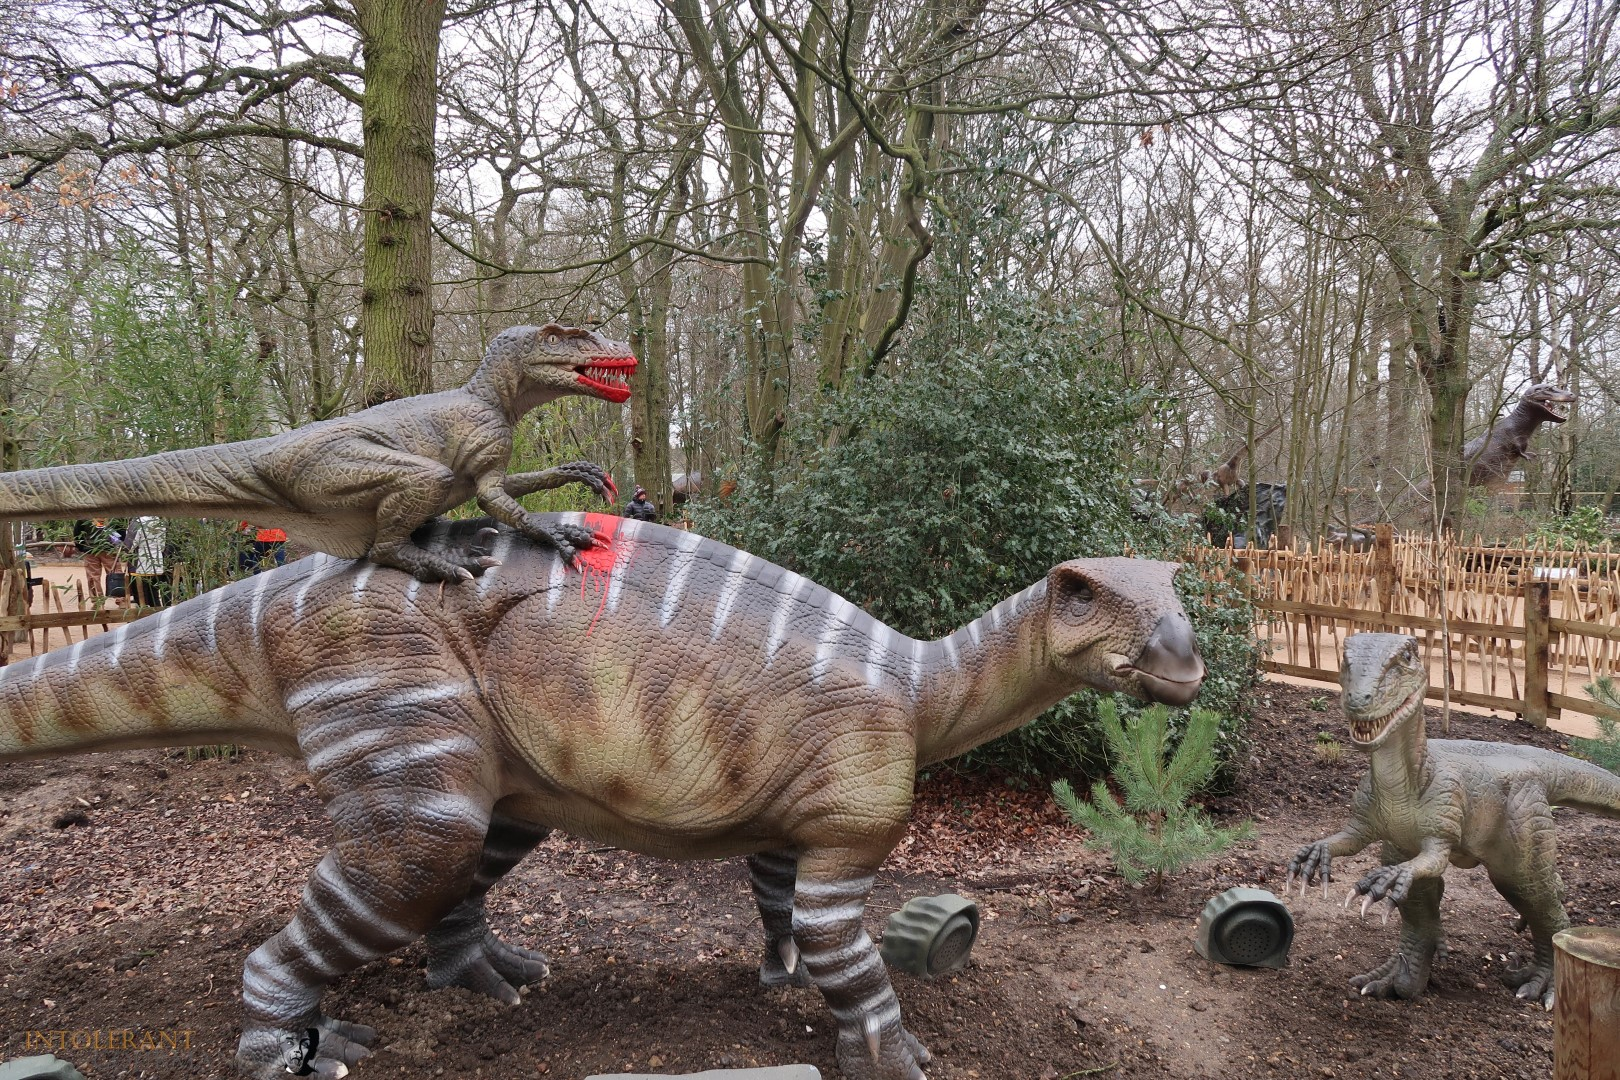 World of Dinosaurs - part of Paradise Wildlife Park! It's an enclosure packed with 30 life size, moving and animated dinosaurs, featuring T-Rex, Stegosaurus, Tricerotops and more! It's a wonderful family day out with lots to explore! www.intolerantgourmand,com